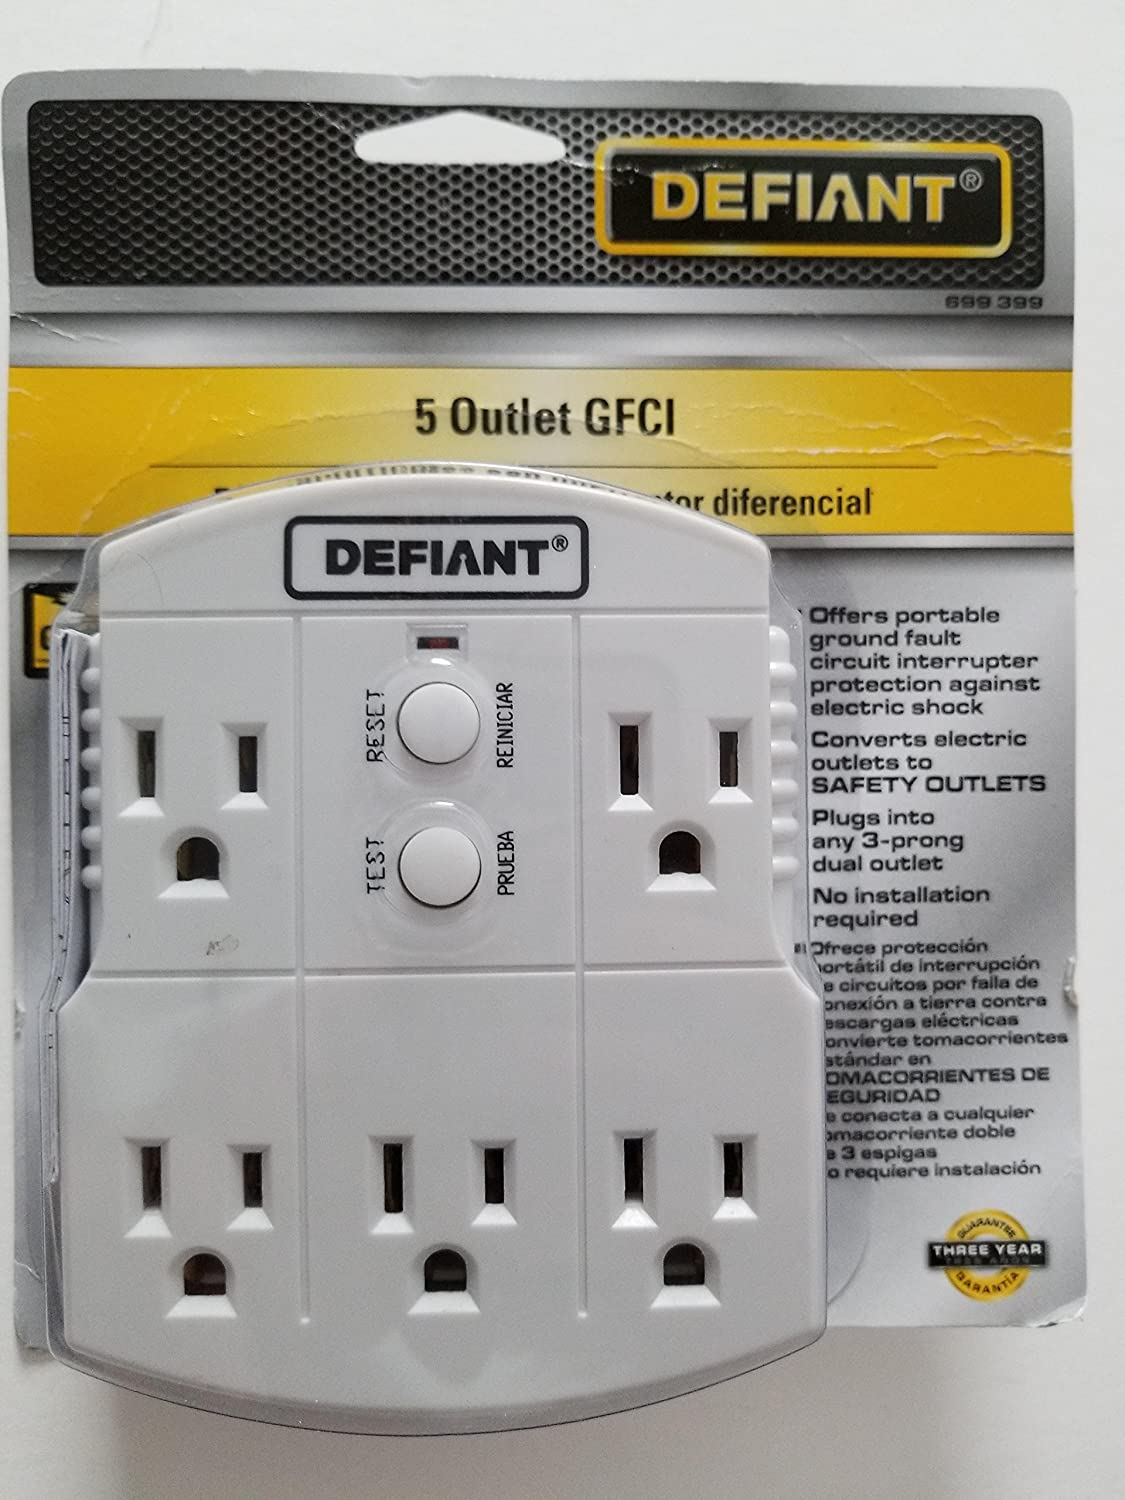 Defiant Gfci 5 Outlet Adapter Groundfault Circuit Interrupter Protects From Electric Shock